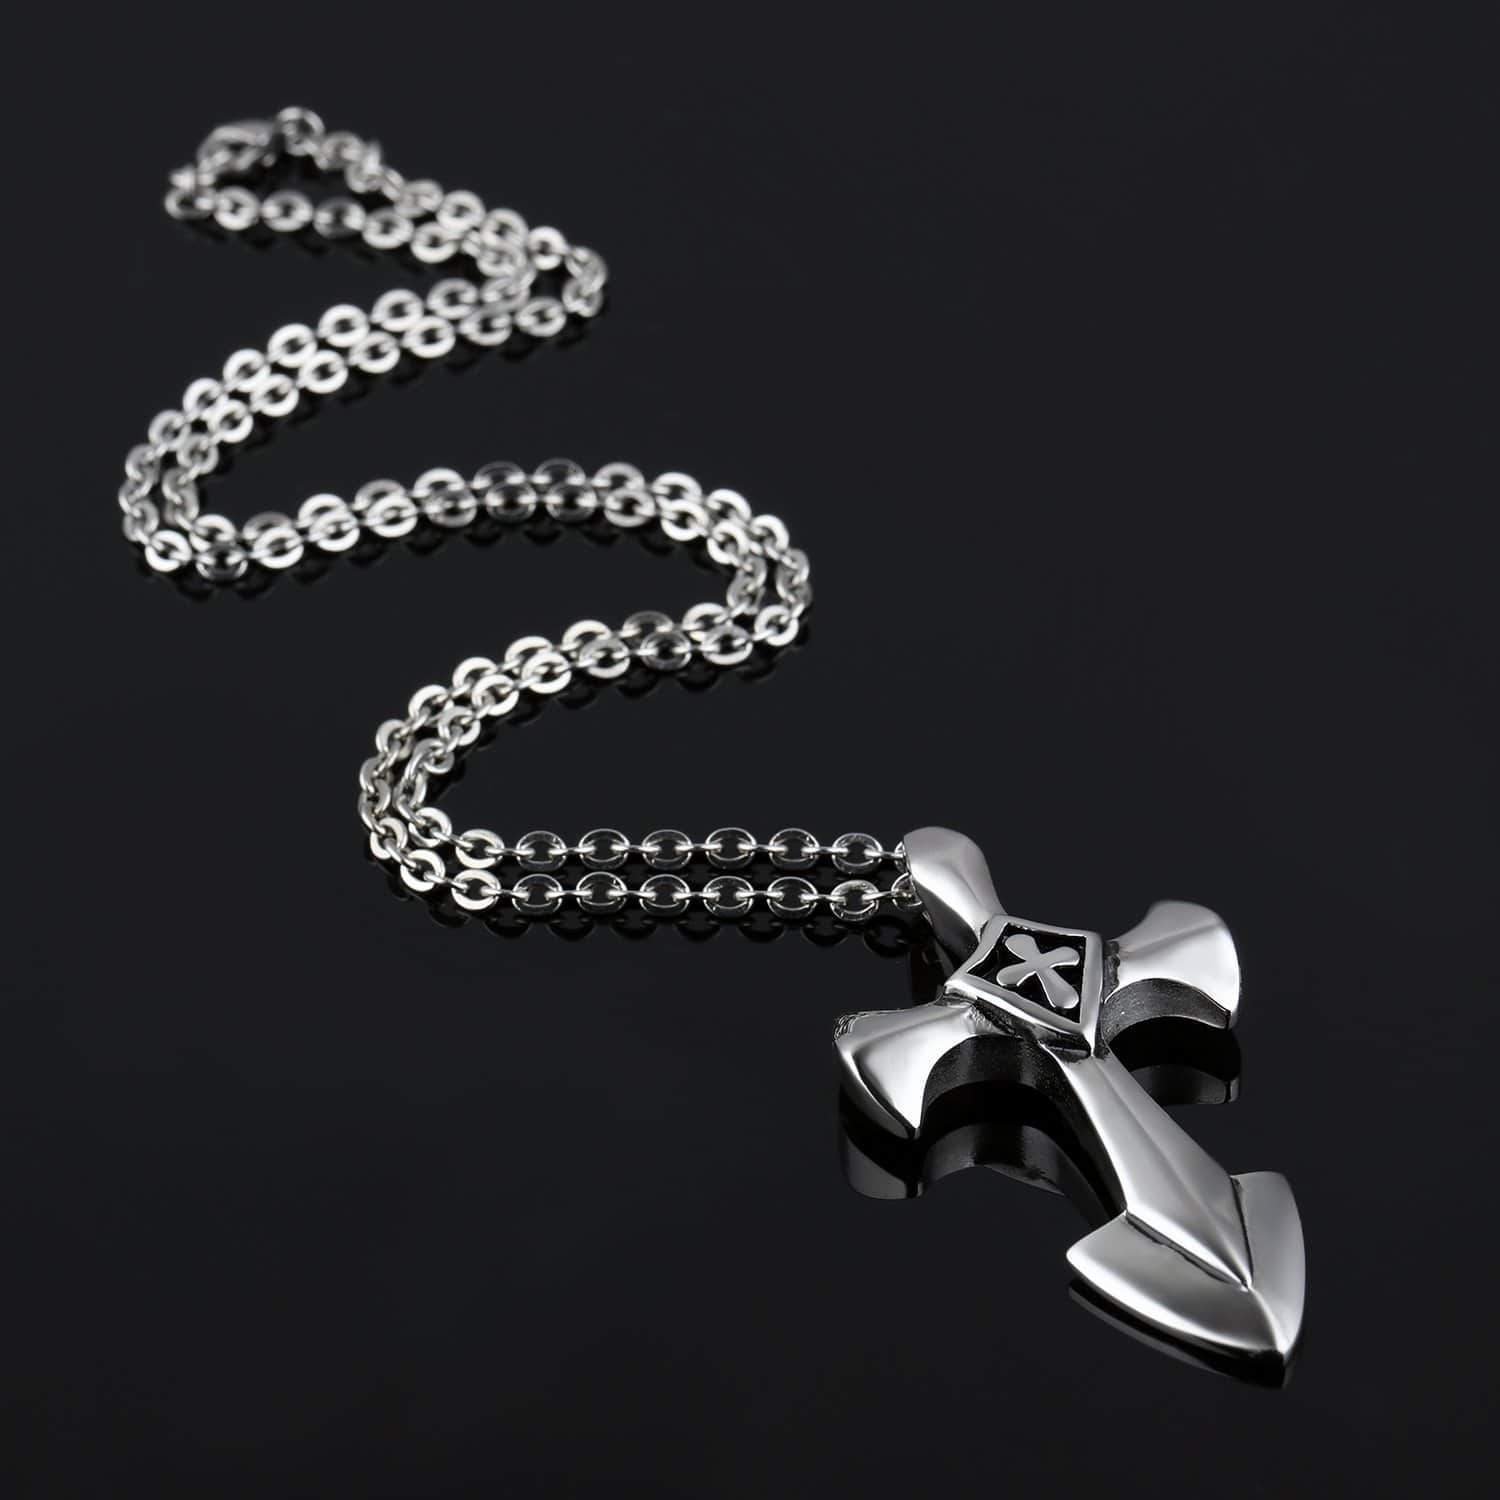 Rock Style Stainless Steel Cross Pendant With 50cm Link Chain / Alternative Jewelry - HARD'N'HEAVY